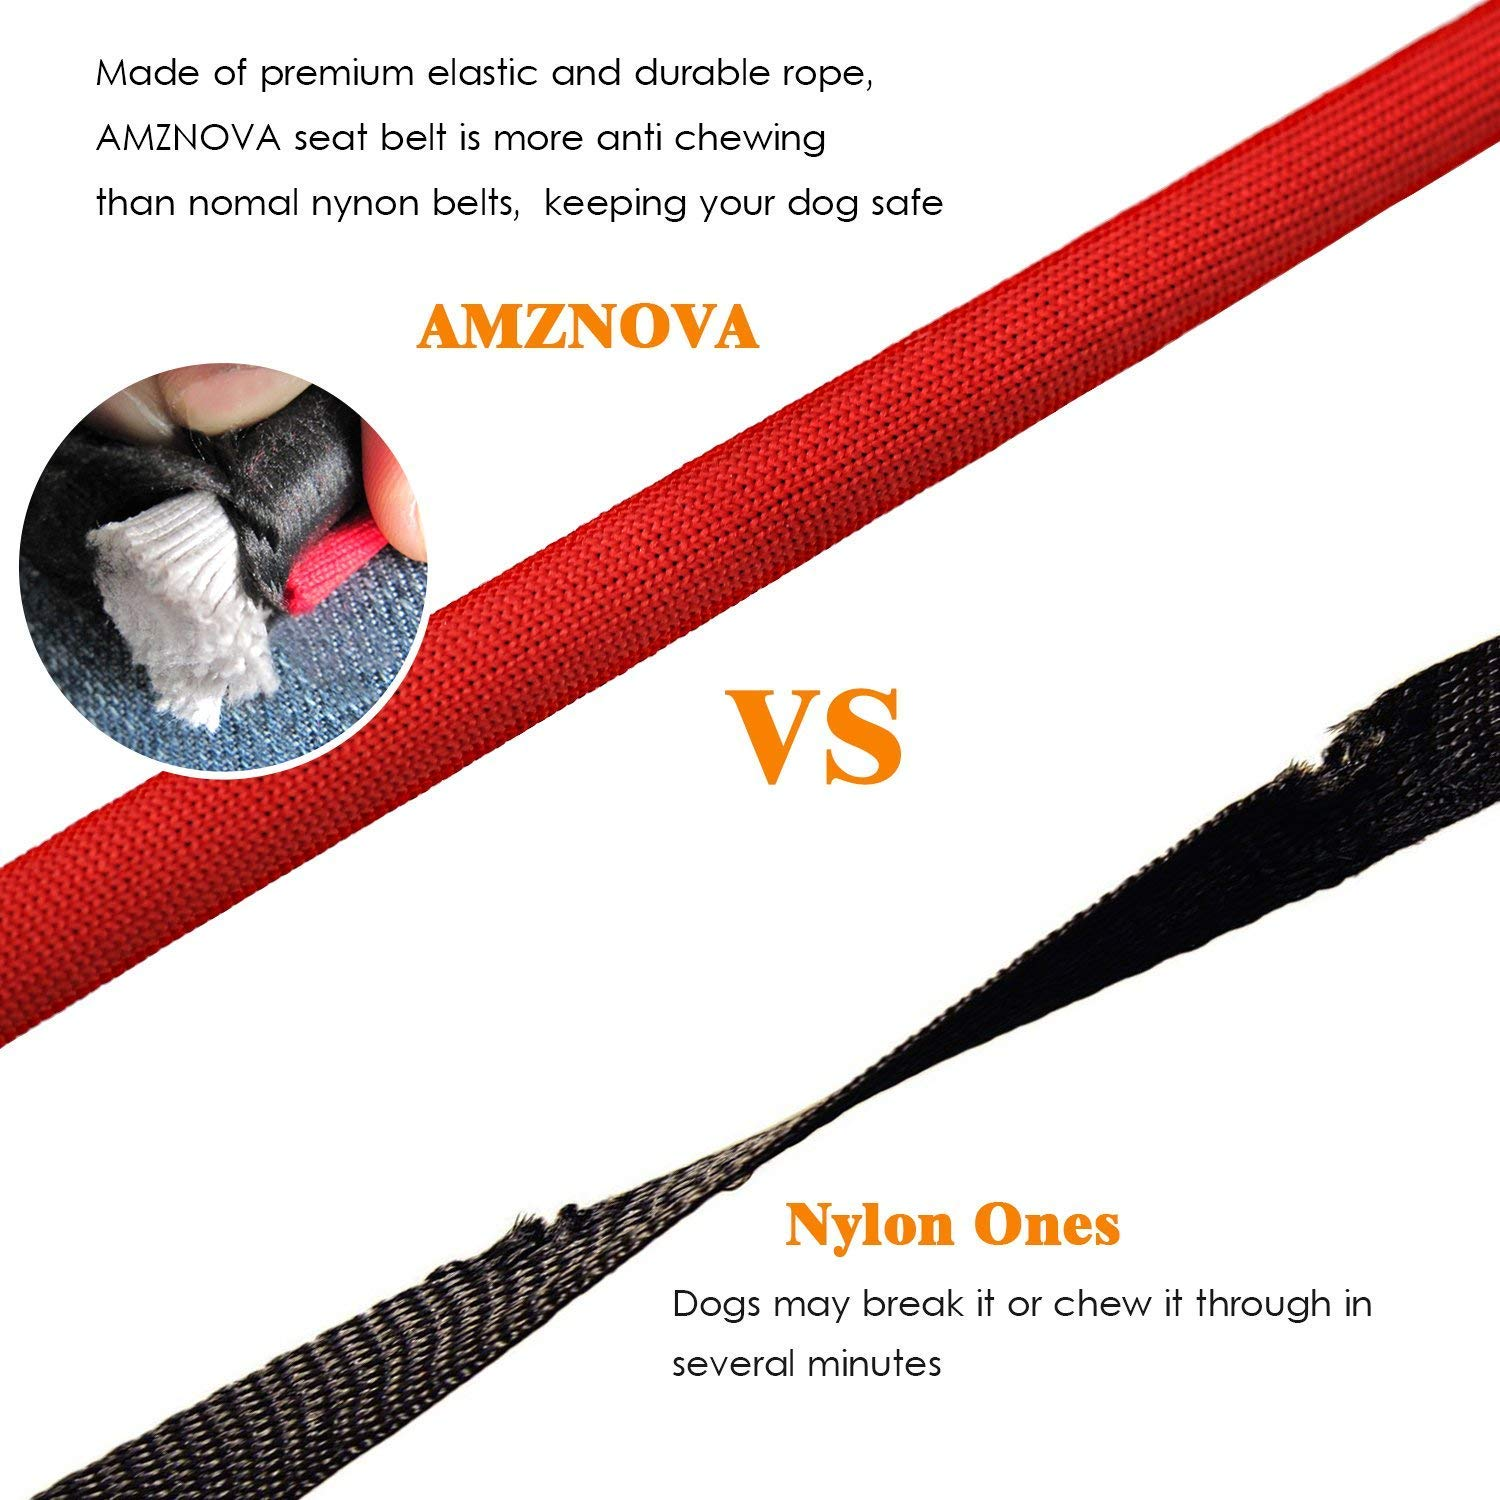 M AMZNOVA Dog Seat Belt Explosion-proof Rushed Dog Car Harness Restraint Pet Safety Latch Seatbelt Durable for Cat Puppy Small Large Dogs Travel Carring Red